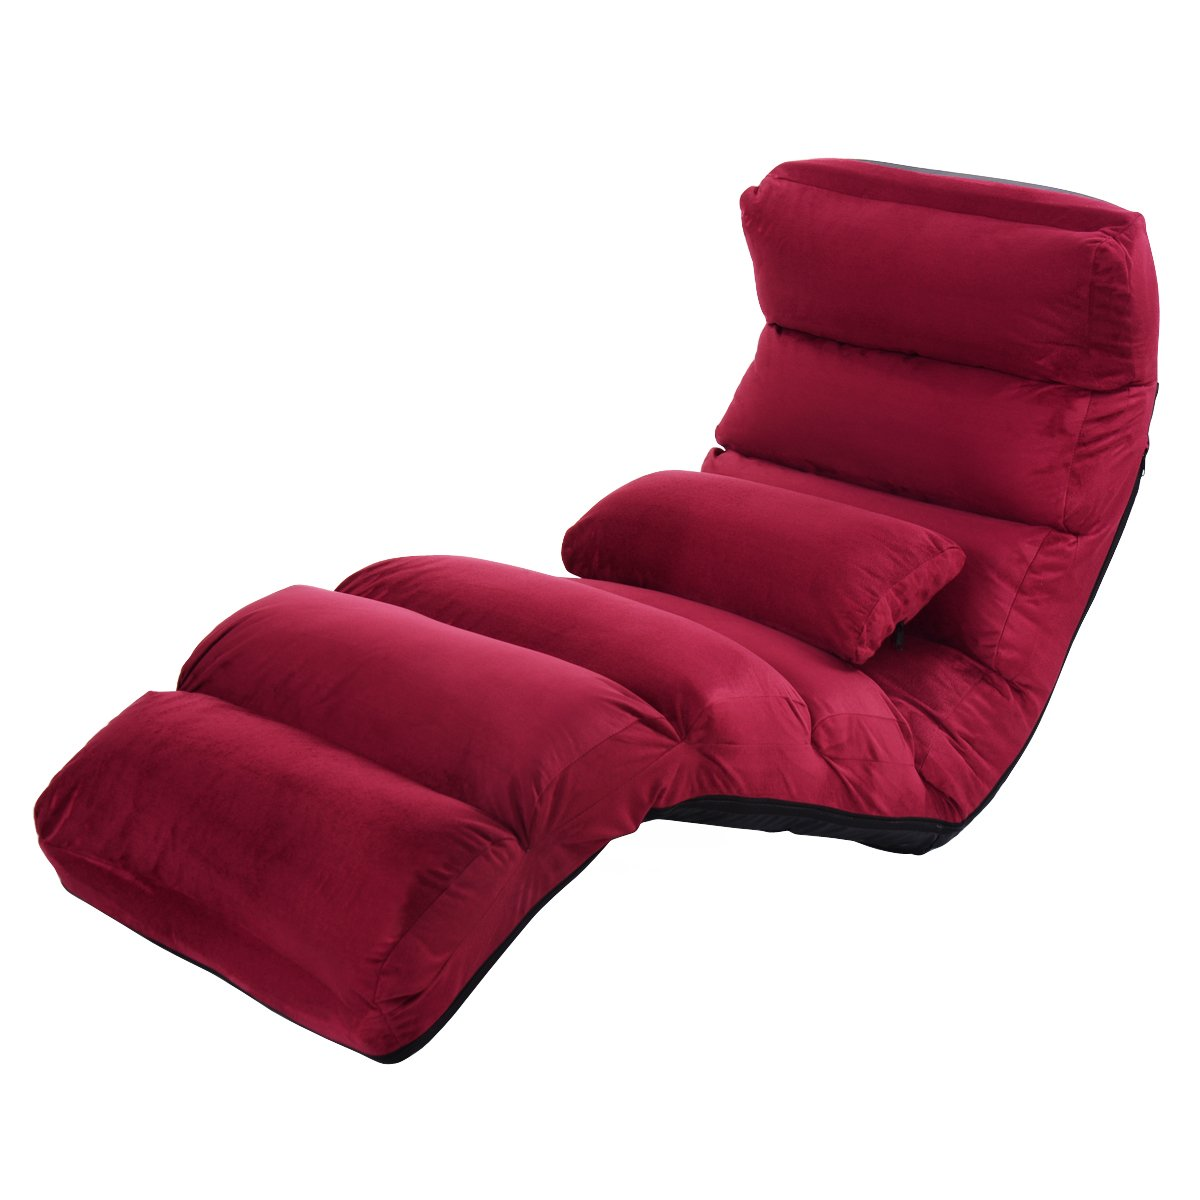 Giantex Folding Lazy Sofa Chair Stylish Sofa Couch Beds Lounge Chair W-Pillow (Burgundy)